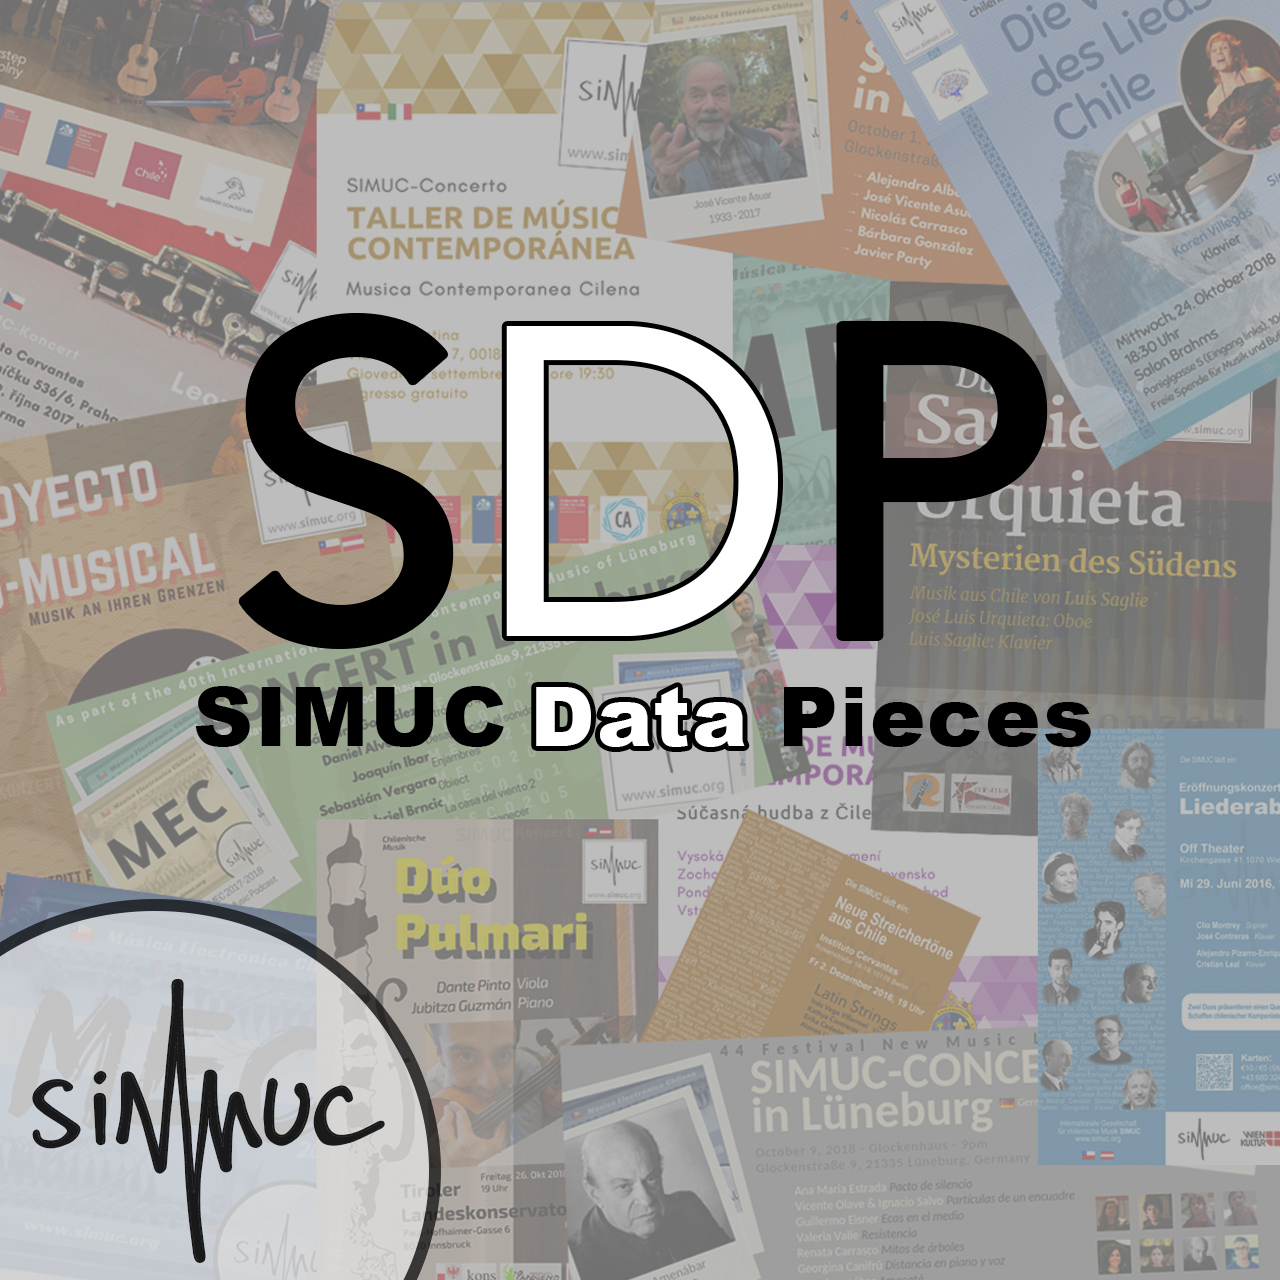 SIMUC|Data - Pieces